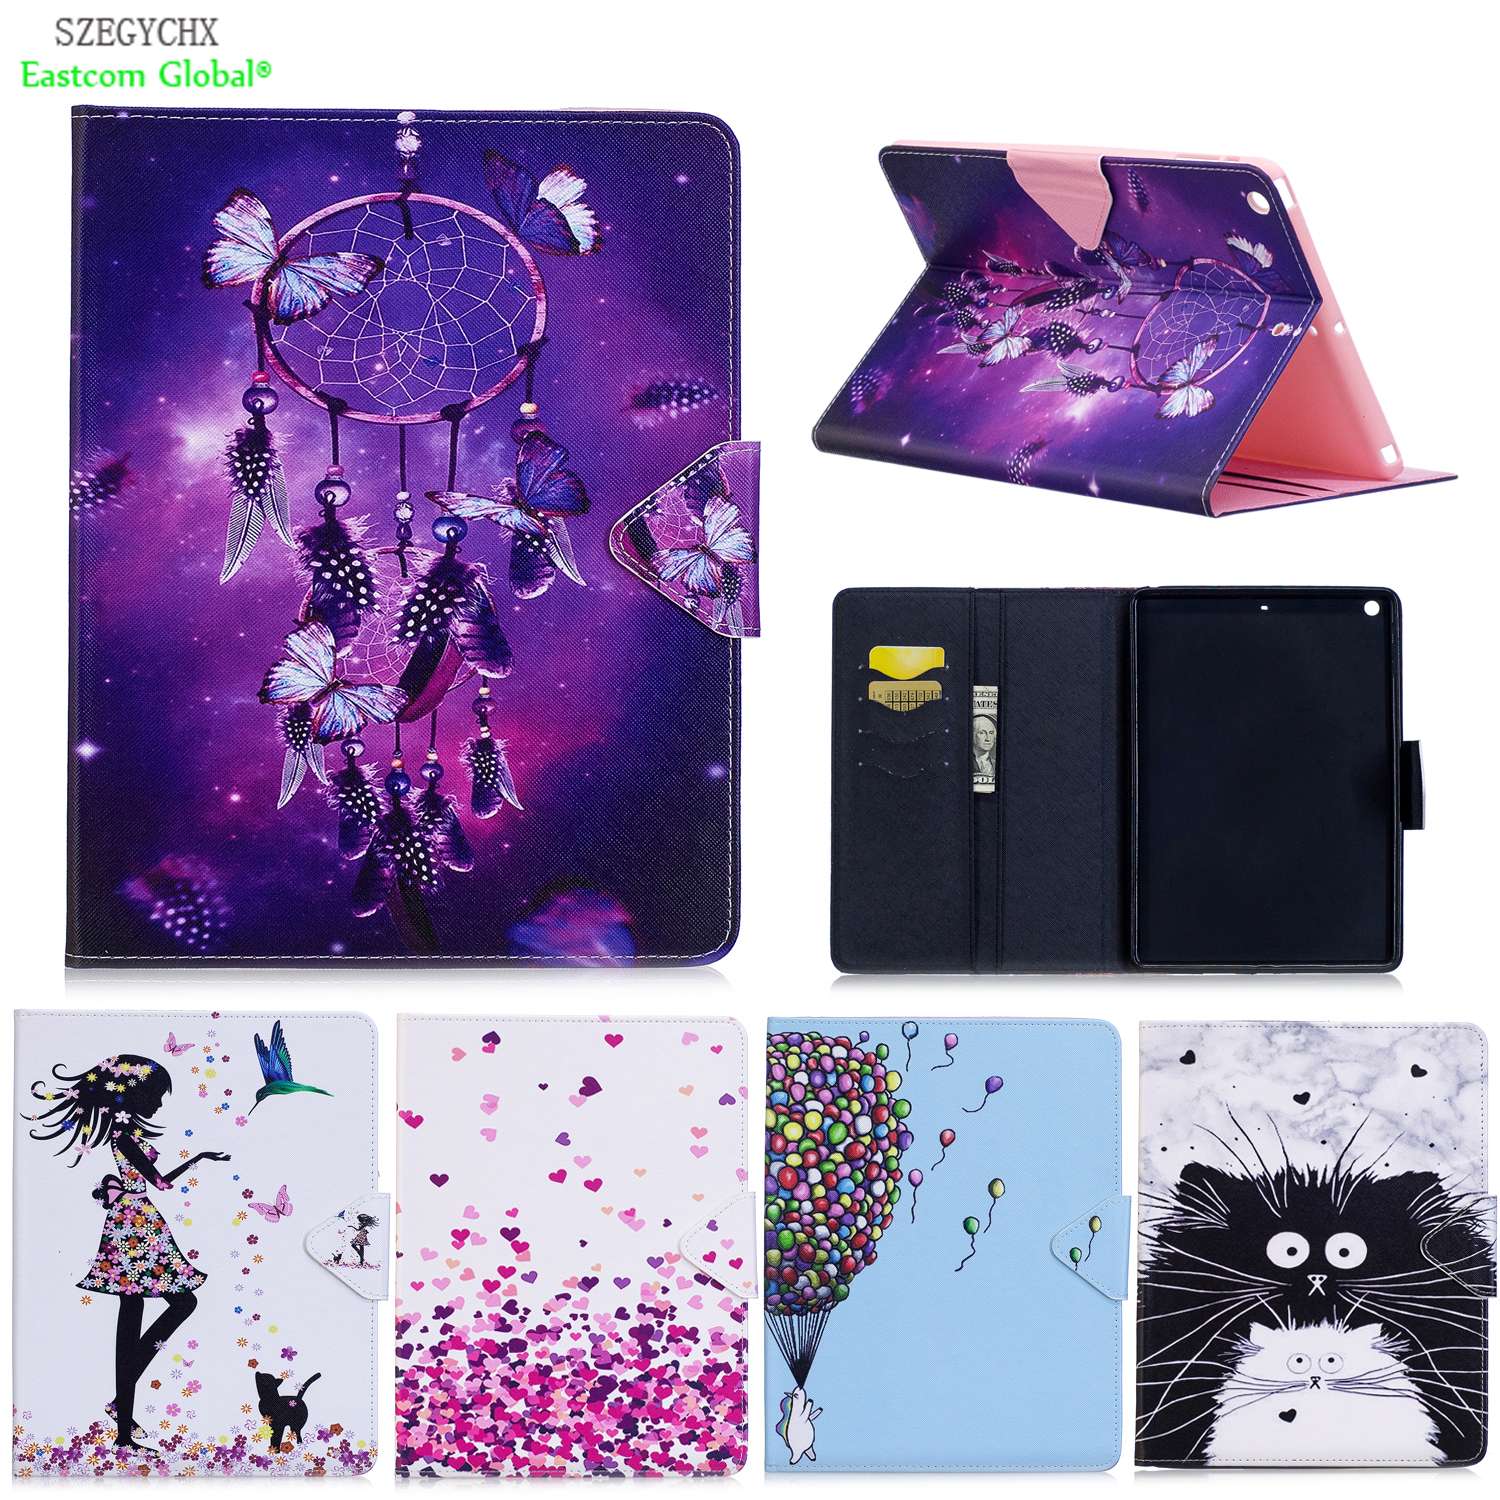 Cover For iPad Air 1,PU Leather Smart cover Stand case For ipad 5 Tablet Case For iPad 9.7 inch Protective cover new 3d stereo cute hello kitty cat shape stand case for ipad mini 4 case smart tablet pu leather cover 7 9 inch for kids girls